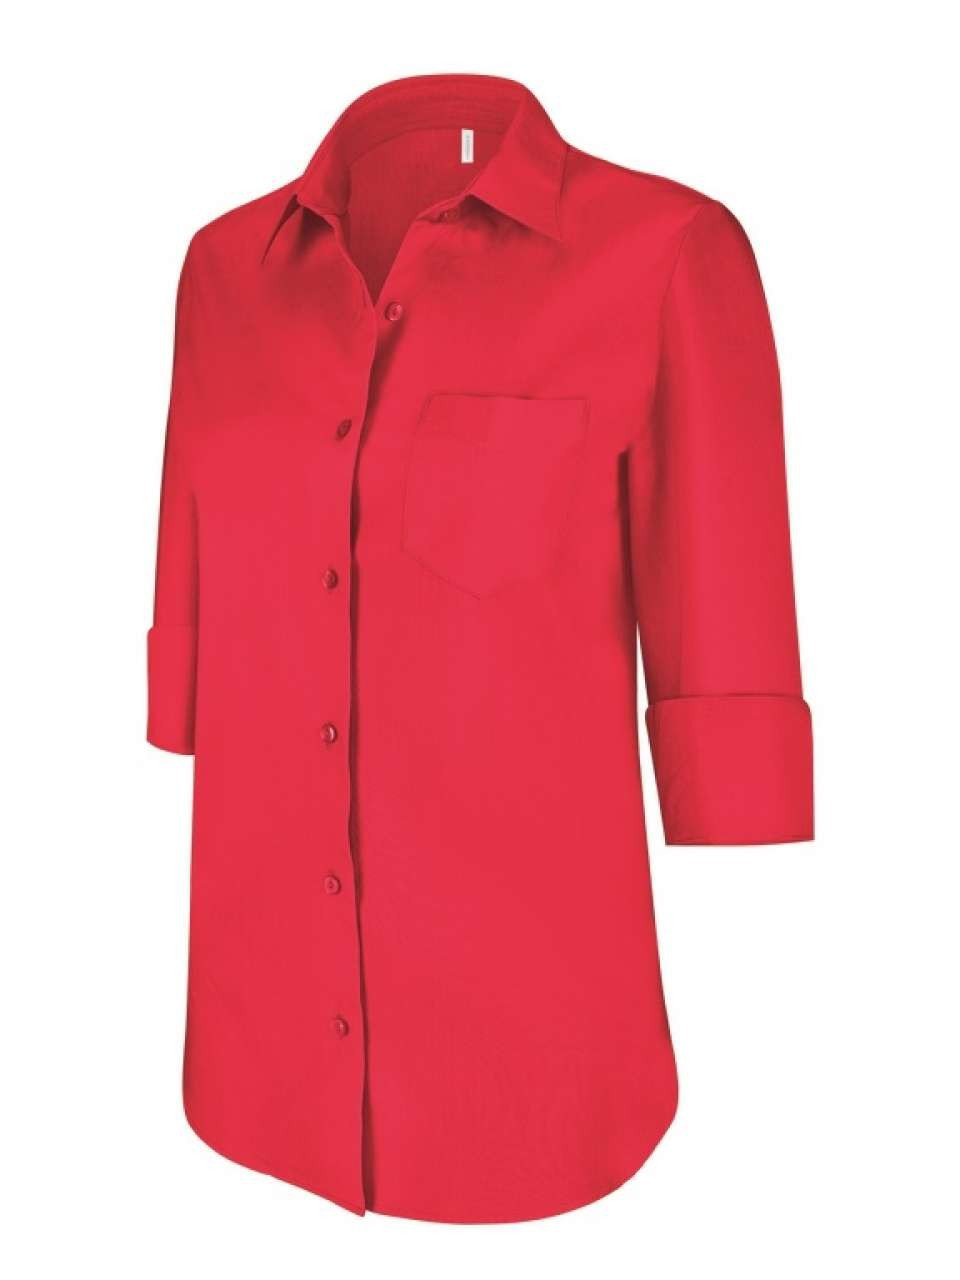 3b98d594 Kariban Ladies 3/4 Sleeve Blouse, Classic Red, L (shirt ...